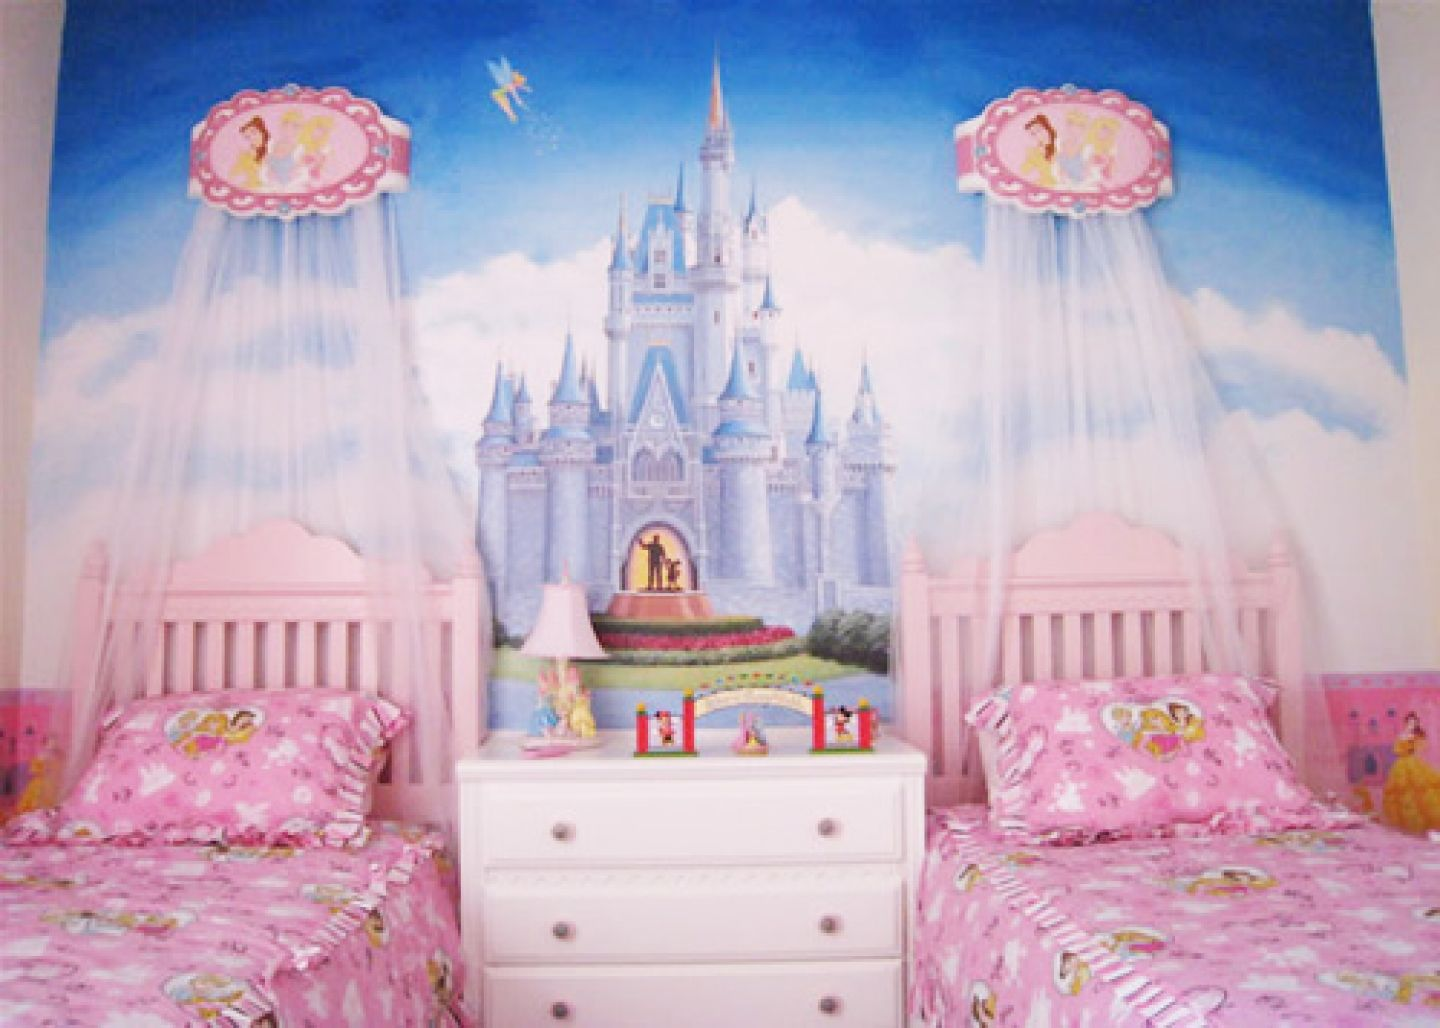 Kids Room Decorating Ideas Part - 27: Princess Palace At The 27 Cool Kids Bedroom Theme Ideas